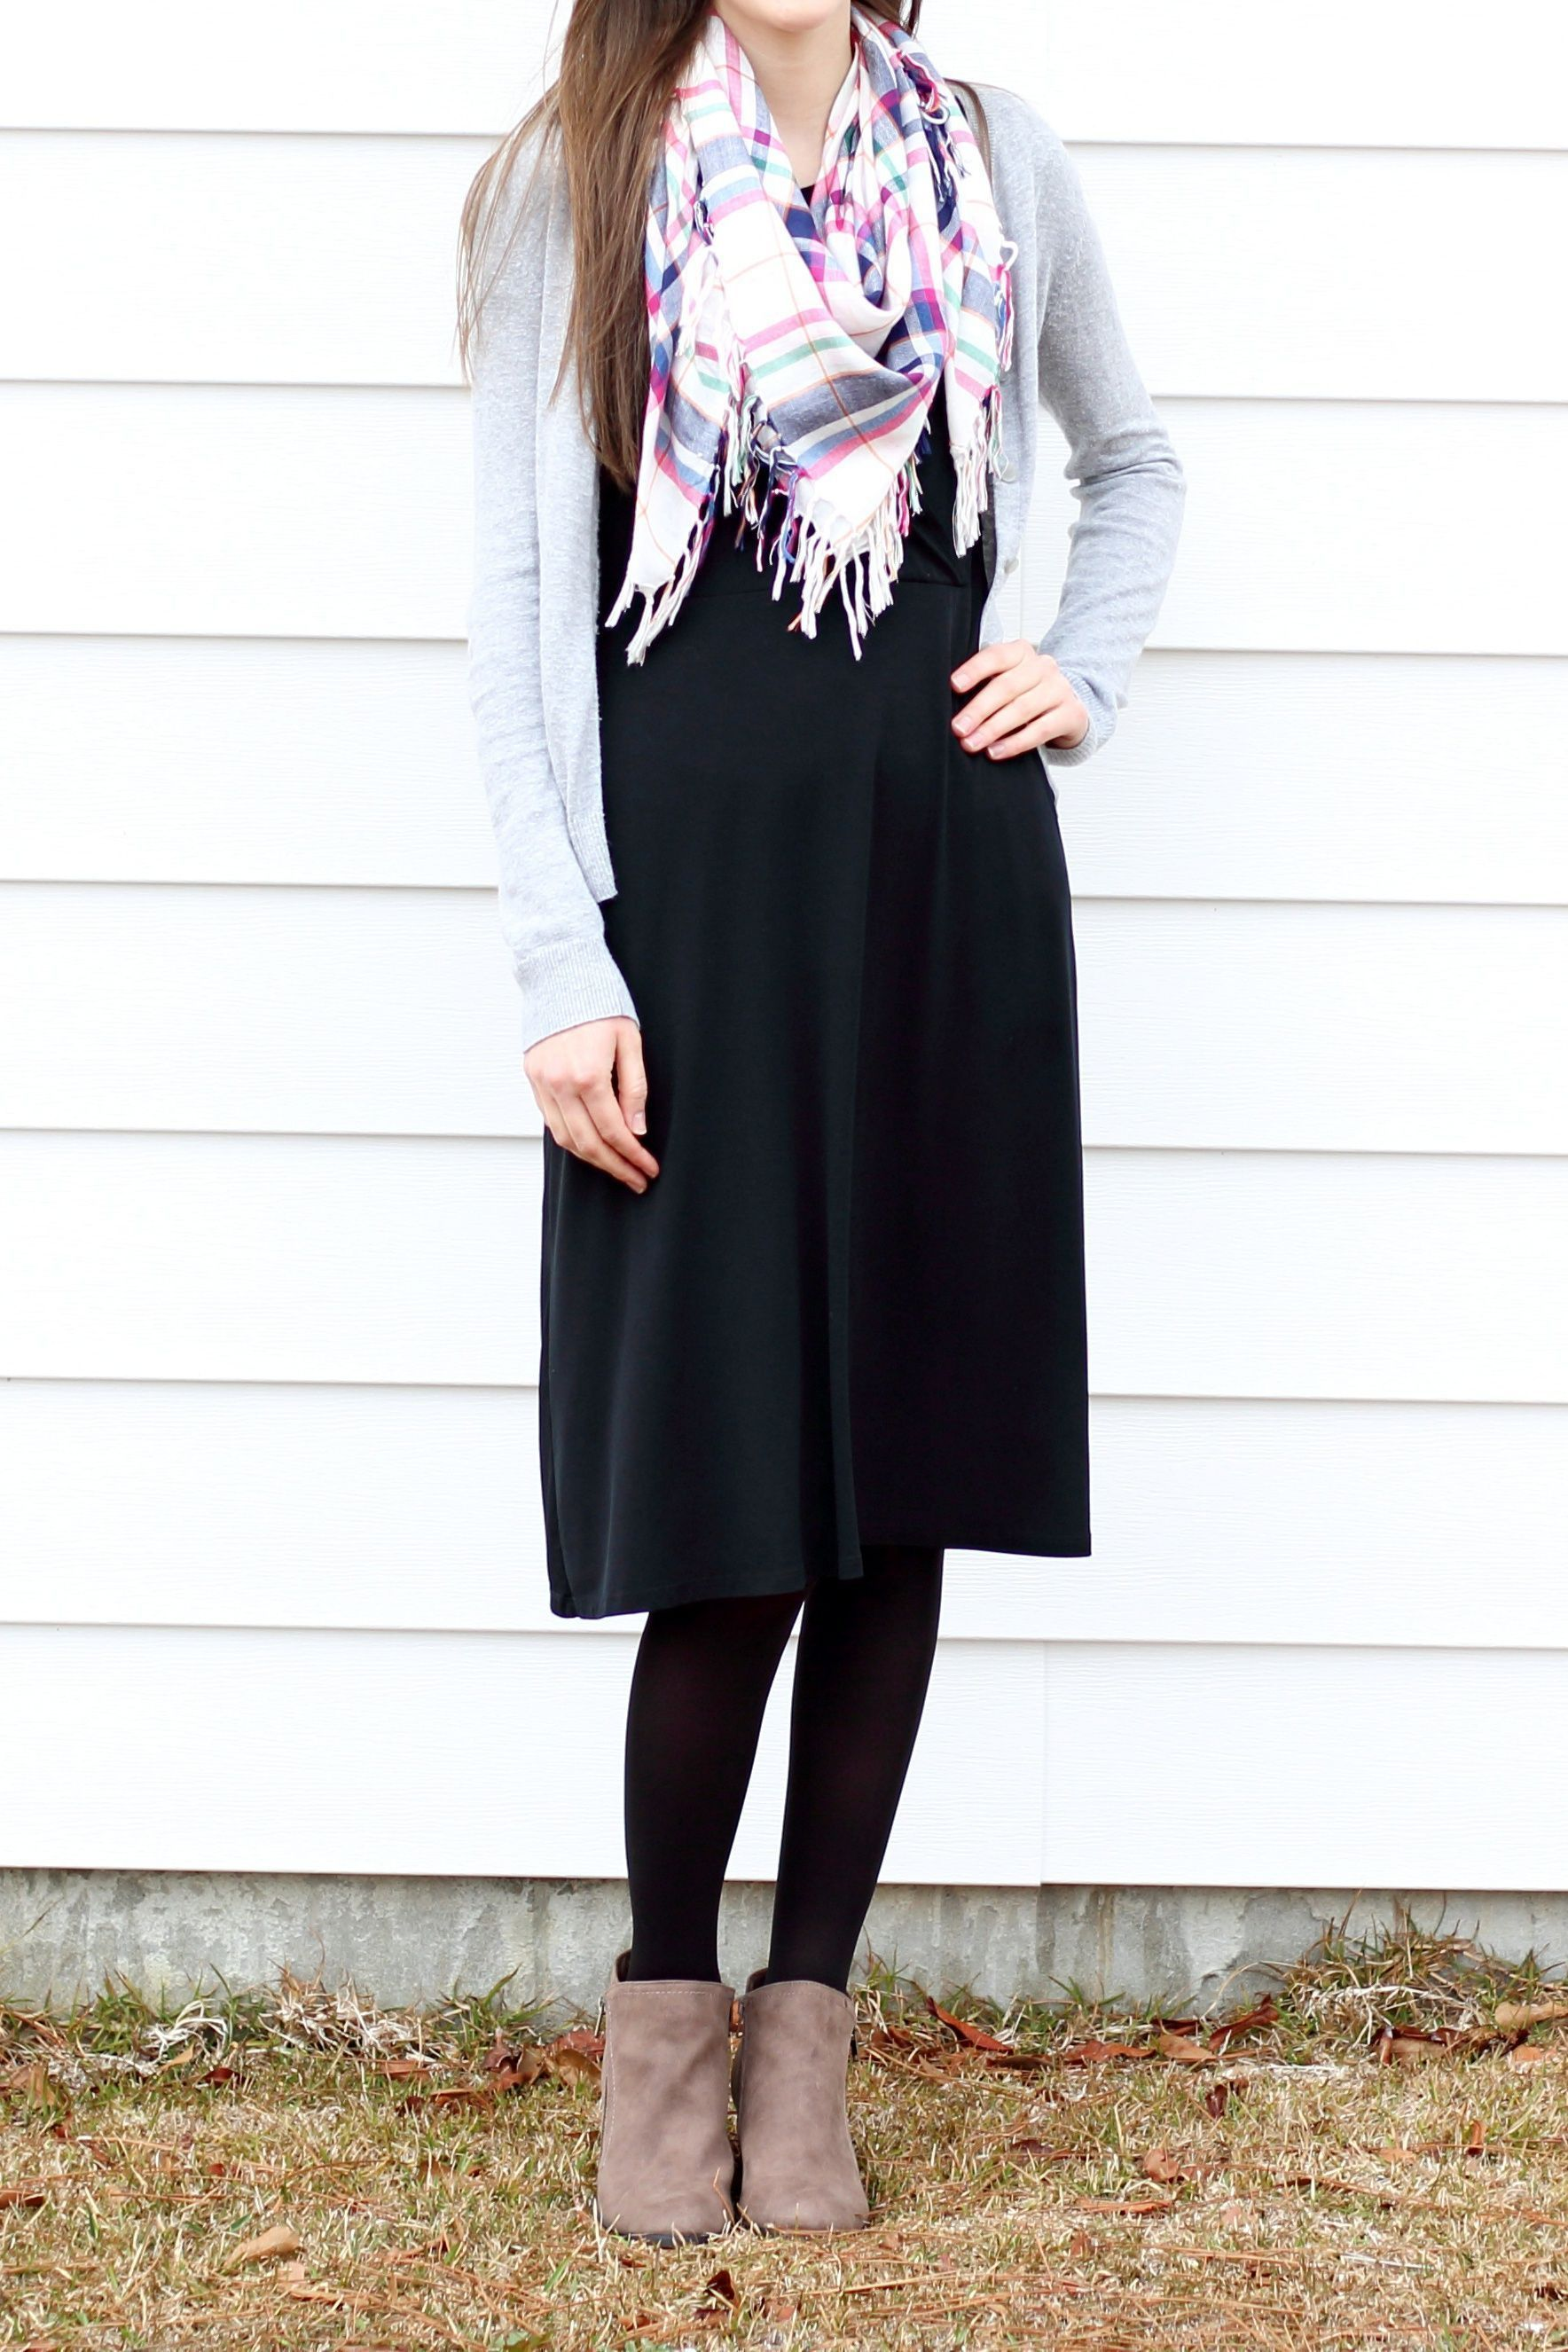 Modest dressycasual outfit idea for churchlittle black dress